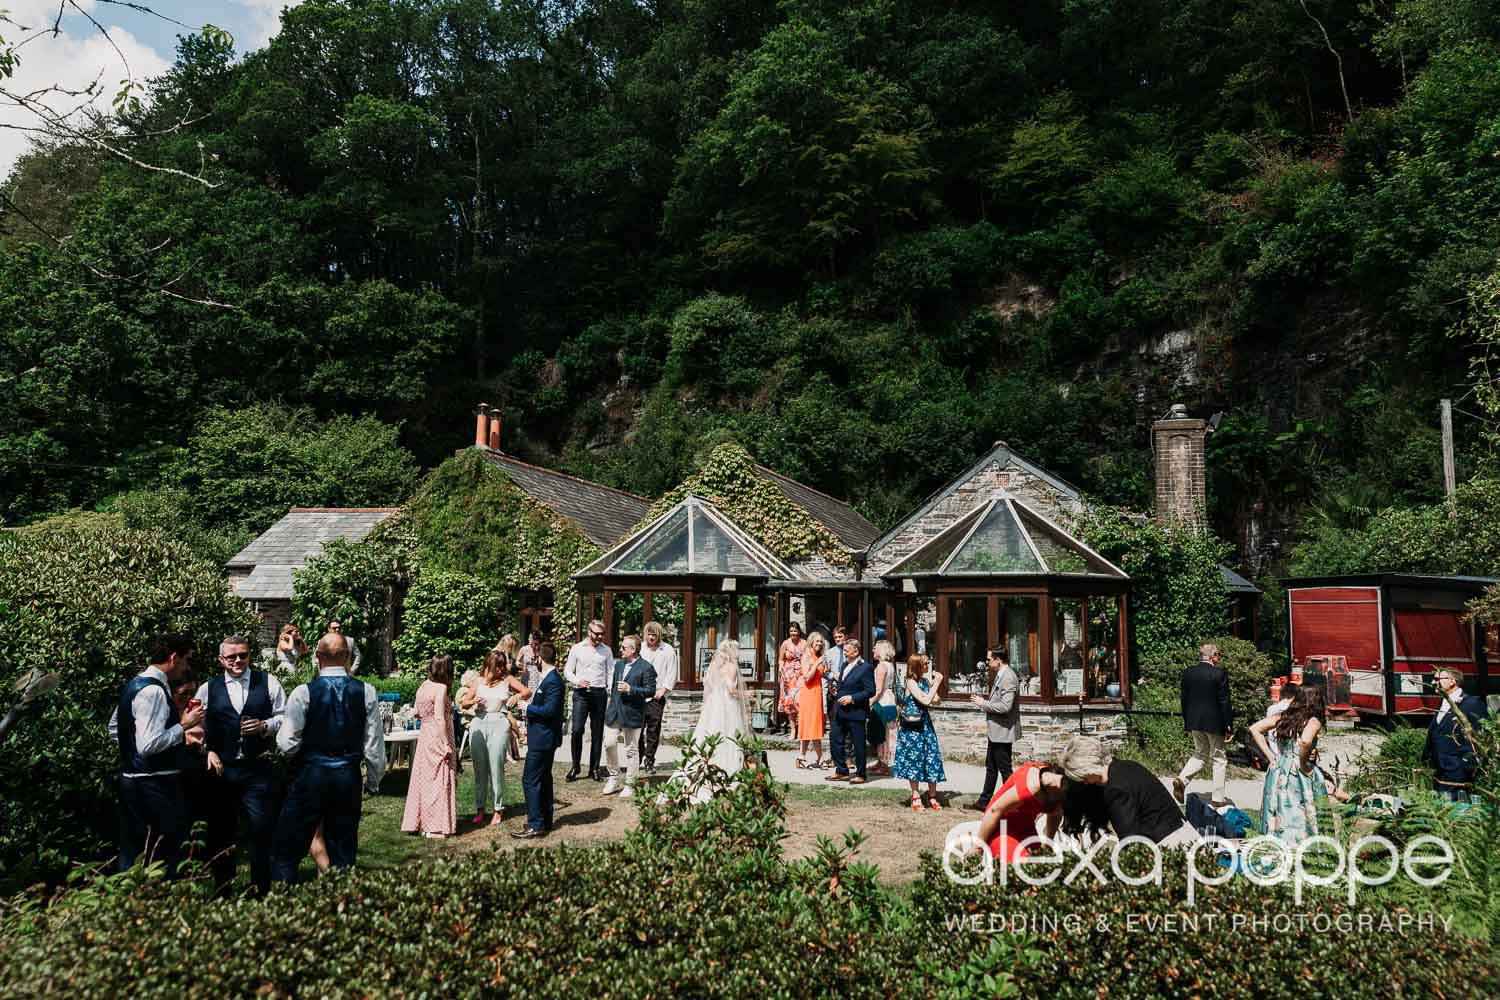 VA_wedding_edenproject_carnglaze_34.jpg